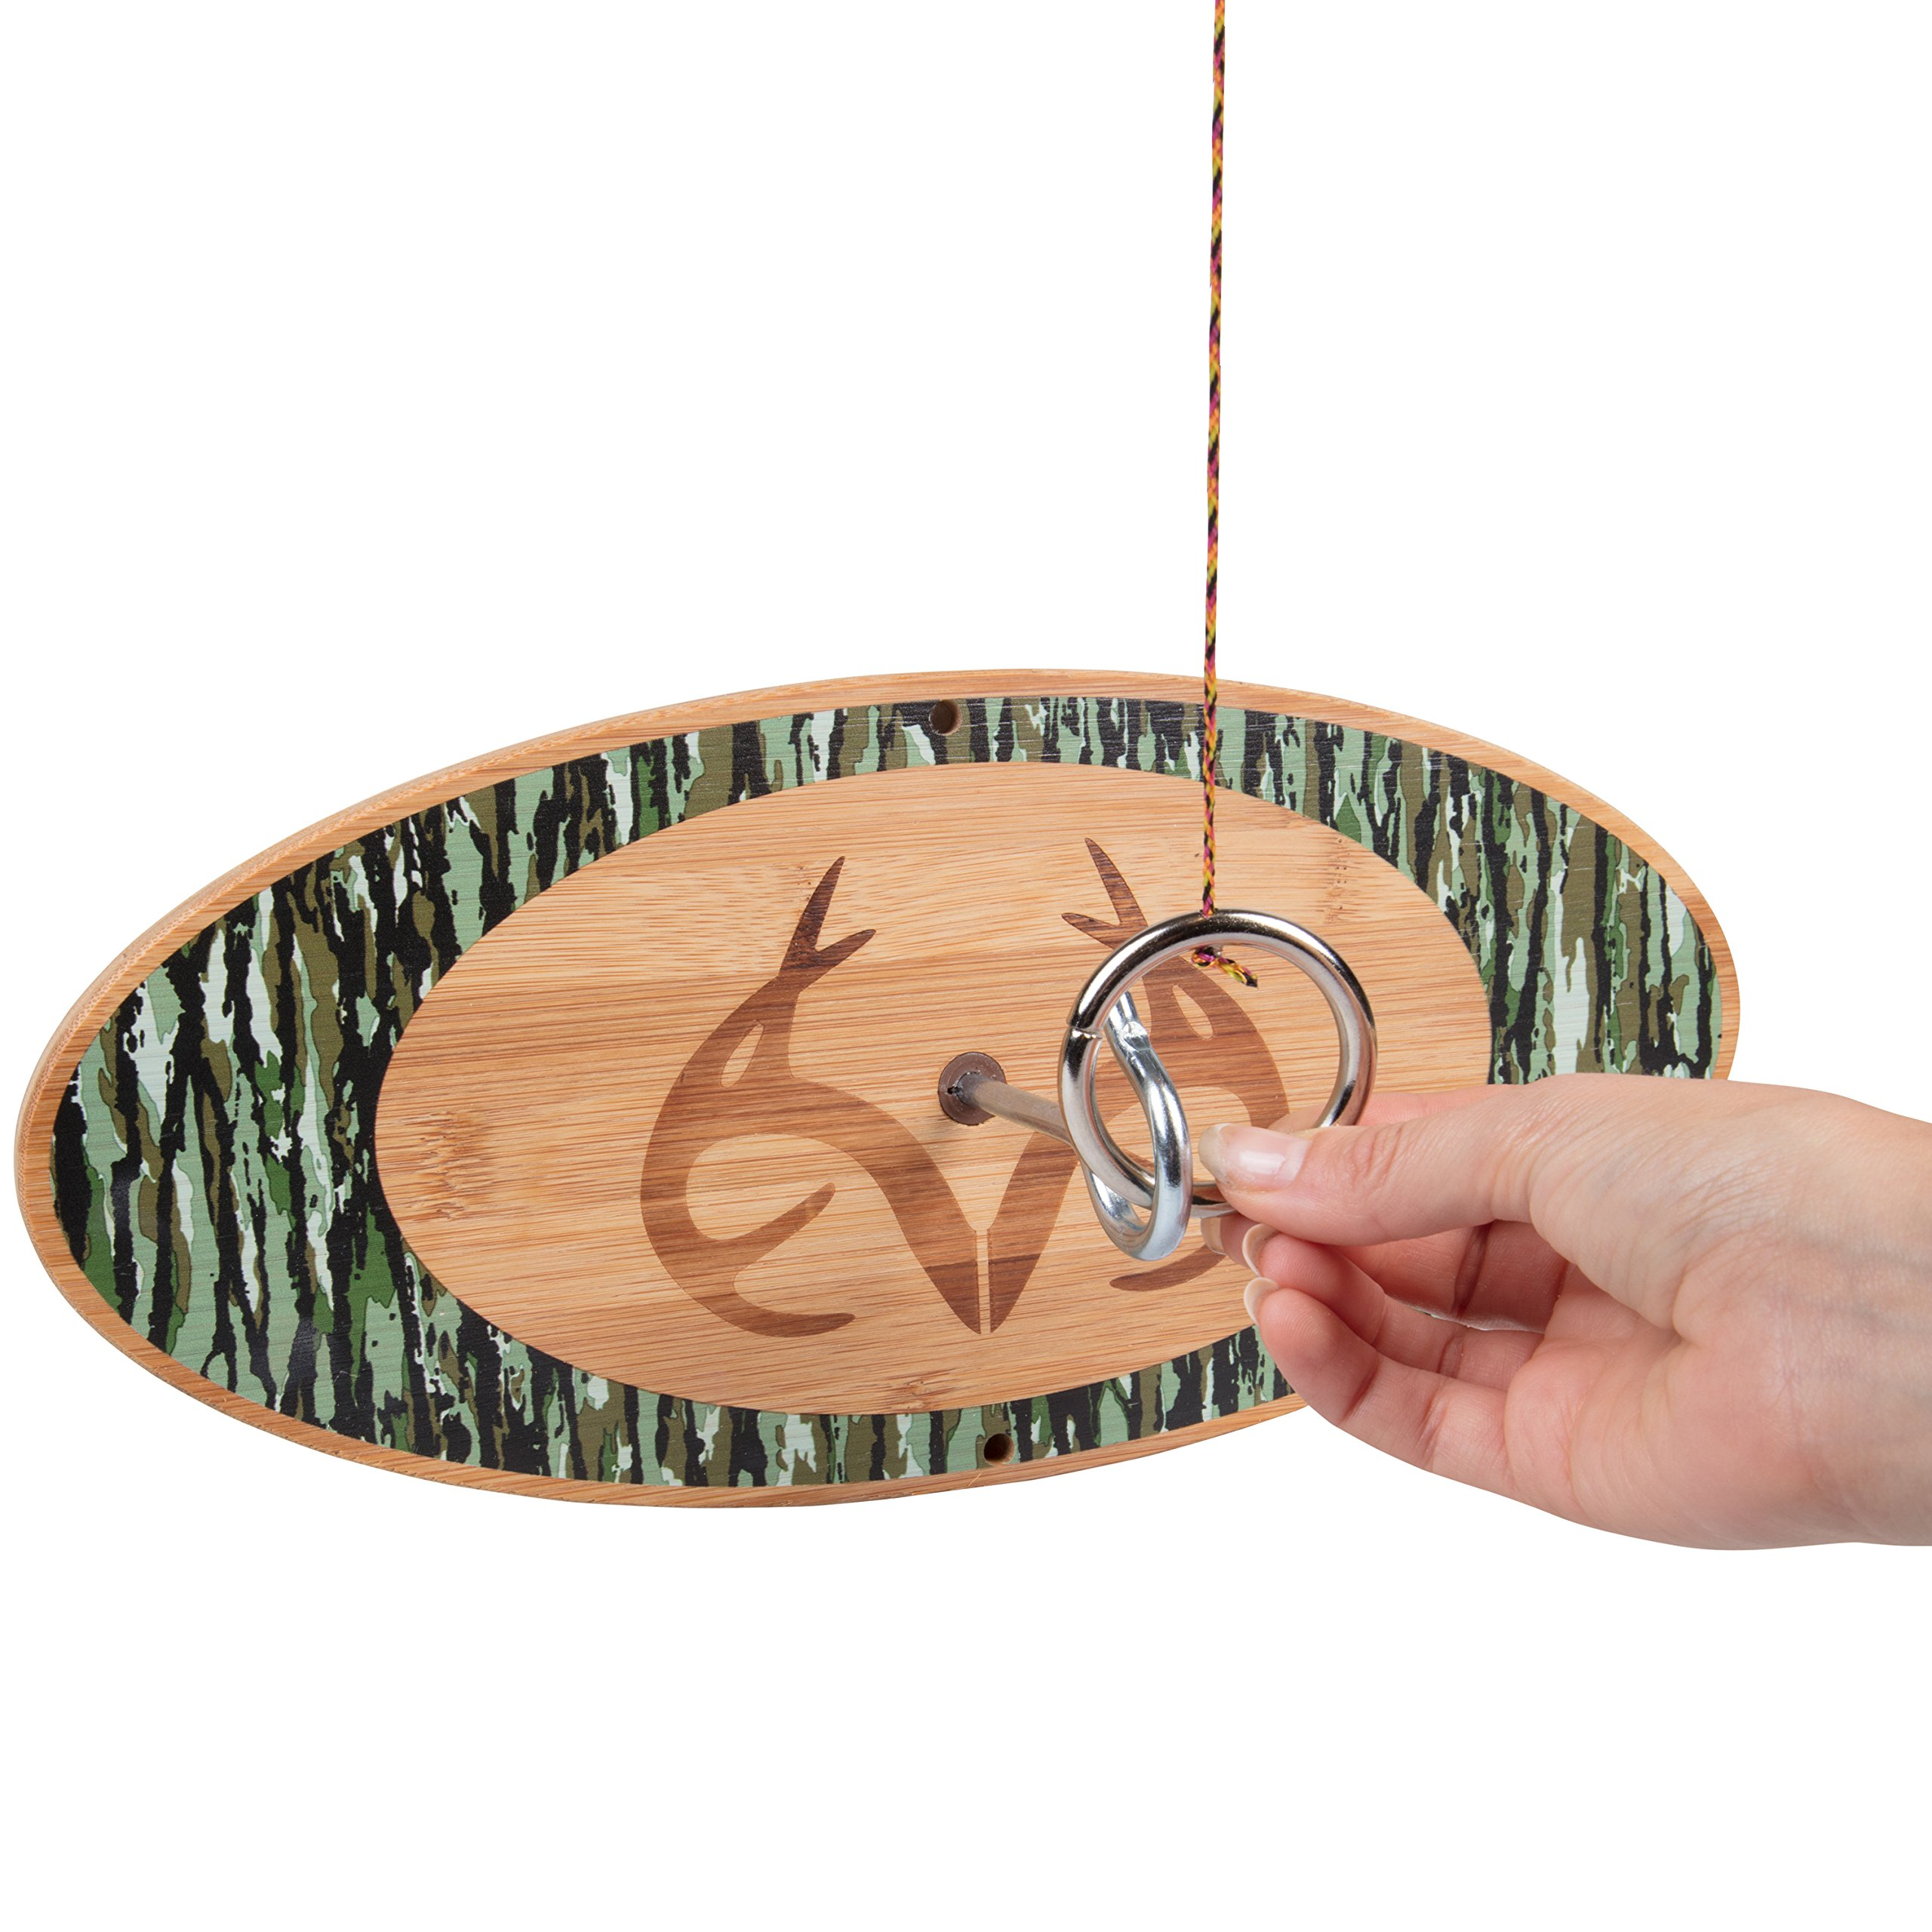 Hook & Ring Game - Indoor/Outdoor Party Game That Puts Your Skills to The Test - Real Tree Original by Tiki Toss